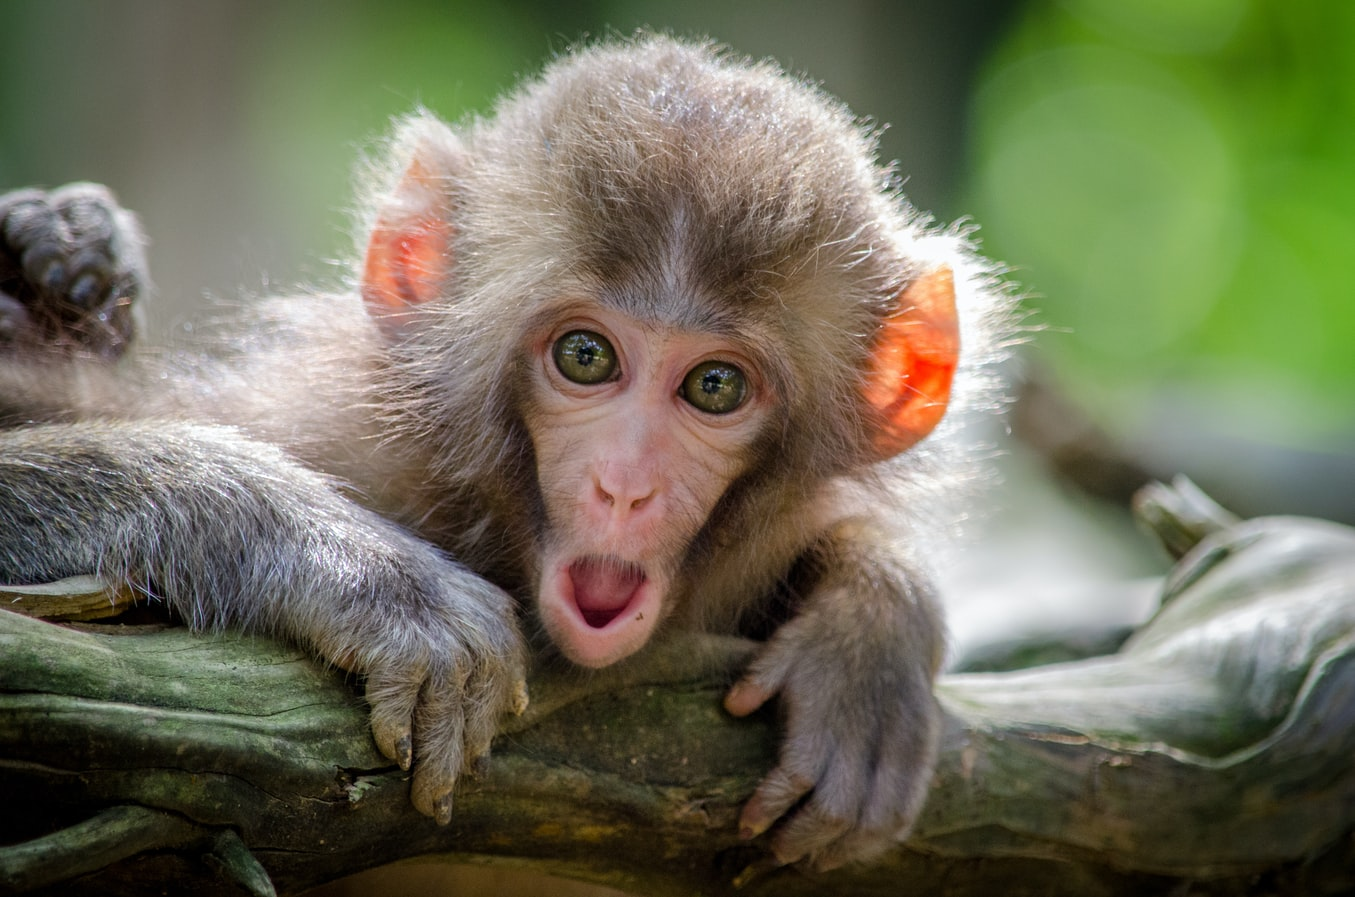 Small shocked monkey clinging to a log